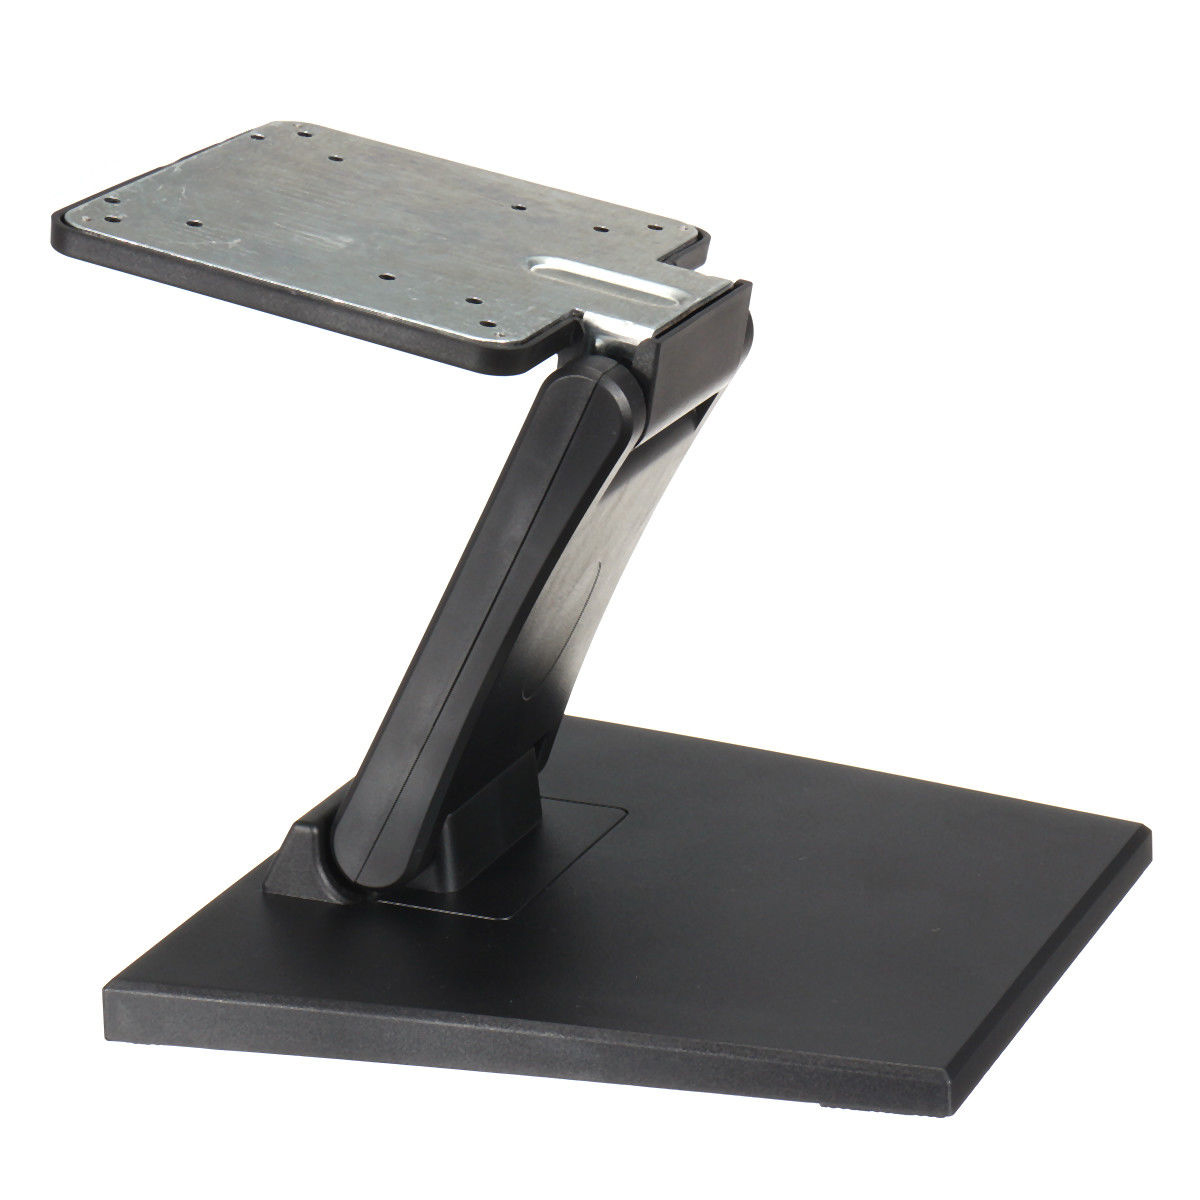 Tilt Mounted Fold Monitor Holder Vesa 10Inch-27Inch Lcd Display Press Screen StandTilt Mounted Fold Monitor Holder Vesa 10Inch-27Inch Lcd Display Press Screen Stand